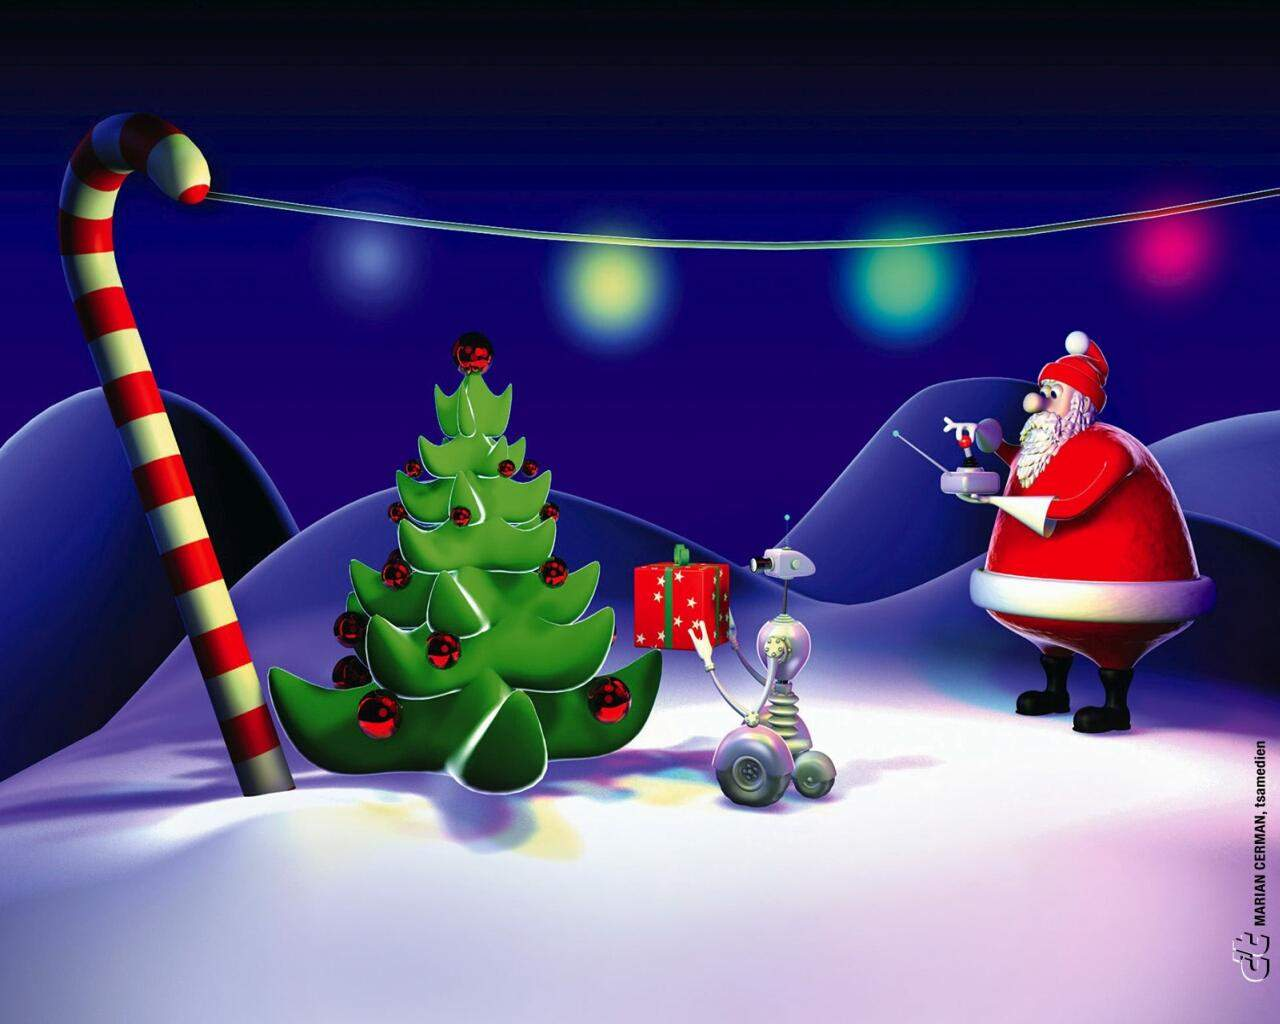 Animated Christmas Wallpapers Free Group 52